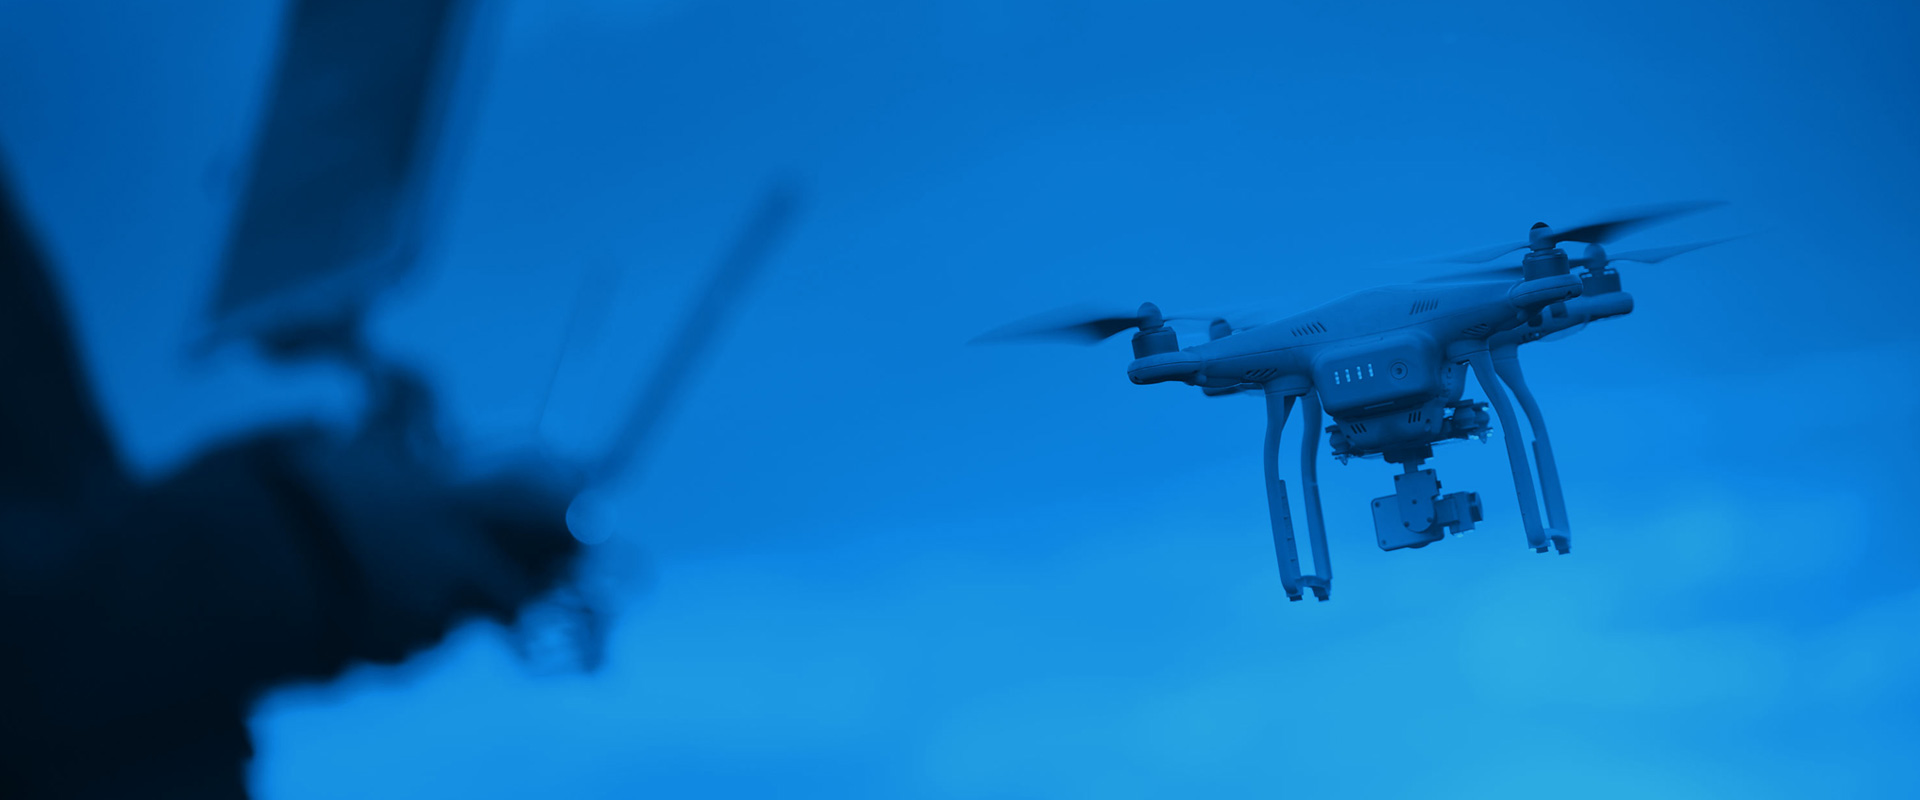 Image of a drone flying